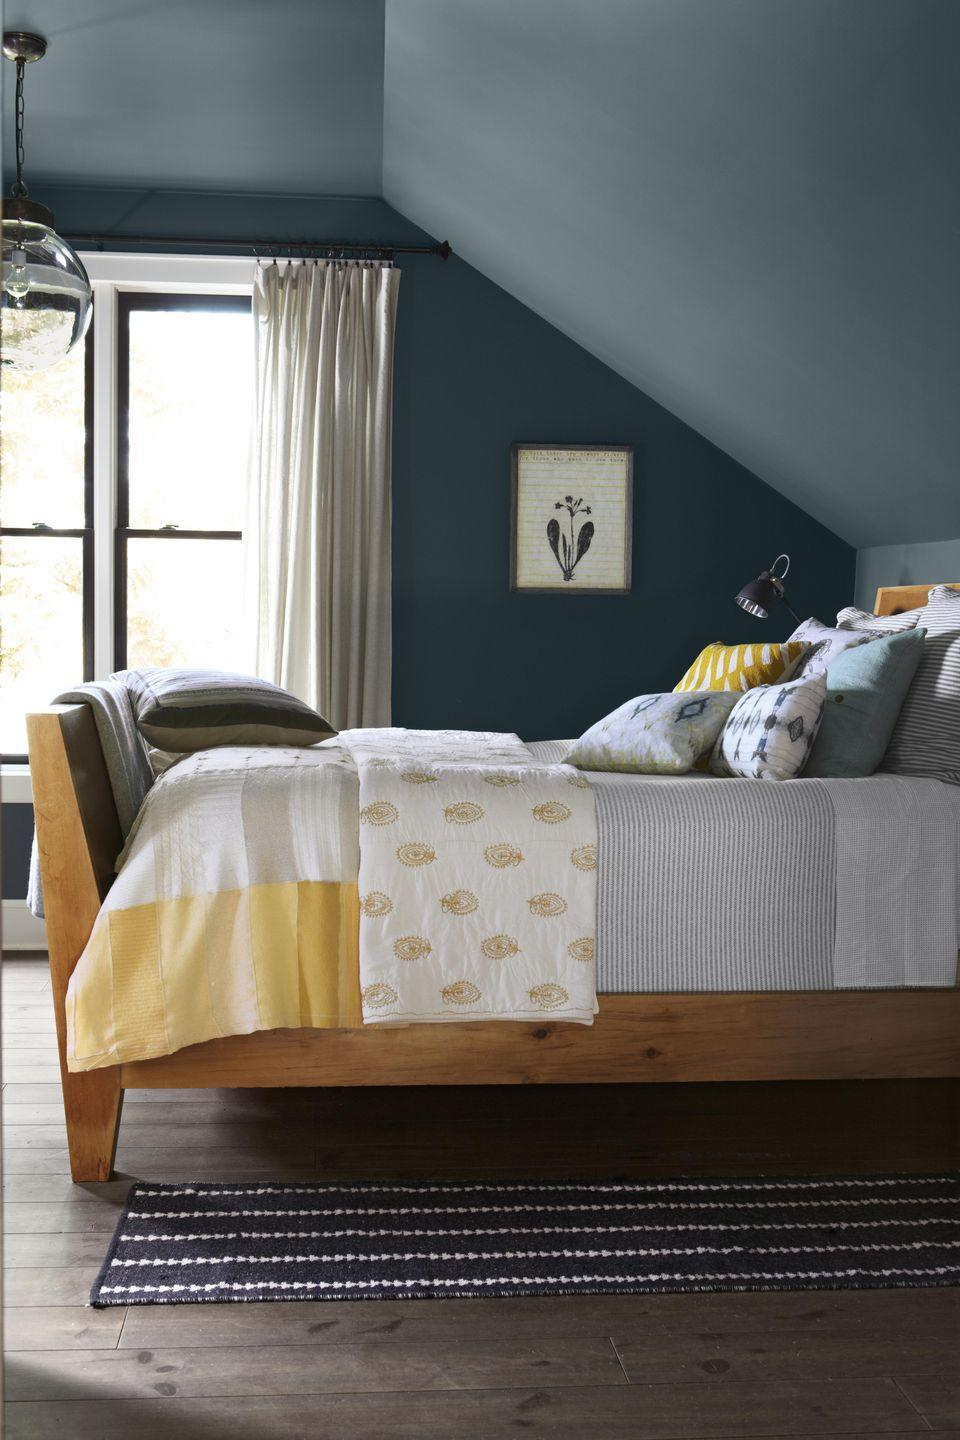 """<p>""""Dark colors make a space feel cozy, which is the ideal environment for sleep,"""" says EasyCare color expert Cynthia Cornell. """"However, be careful to only choose a bold, dark color when your bedroom has an abundant amount of natural light to balance out the cozy feeling with energy to help you wake up and start the day.""""</p><p><strong>Get the Look:</strong><br>Wall Paint Color: <a href=""""https://www.clare.com/paint/wall/irony"""" rel=""""nofollow noopener"""" target=""""_blank"""" data-ylk=""""slk:Irony by Clare"""" class=""""link rapid-noclick-resp"""">Irony by Clare</a></p>"""